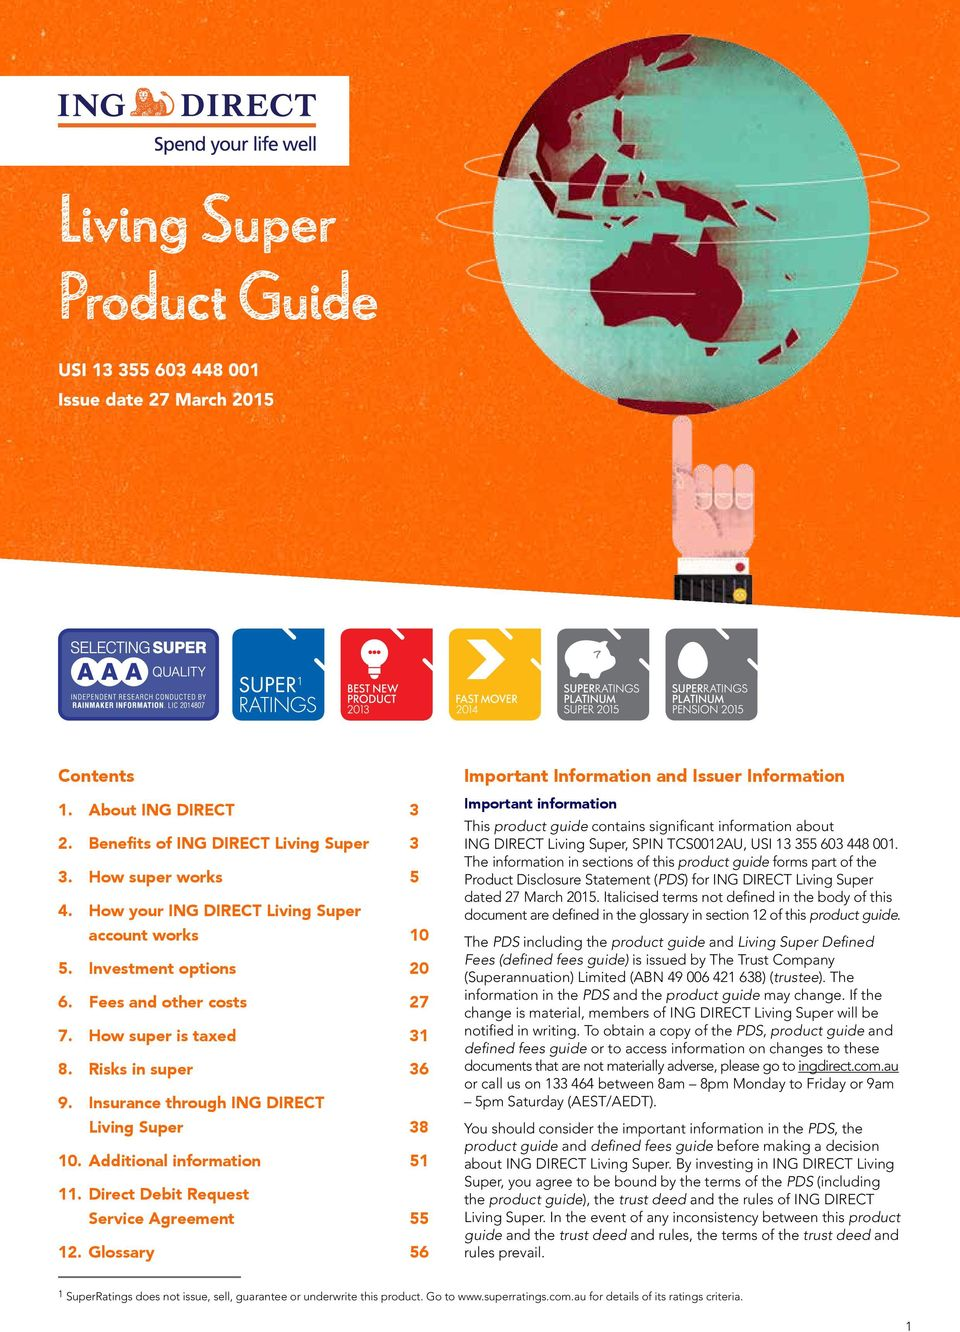 Glossary 56 Important Information and Issuer Information Important information This product guide contains significant information about ING DIRECT Living Super, SPIN TCS0012AU, USI 13 355 603 448